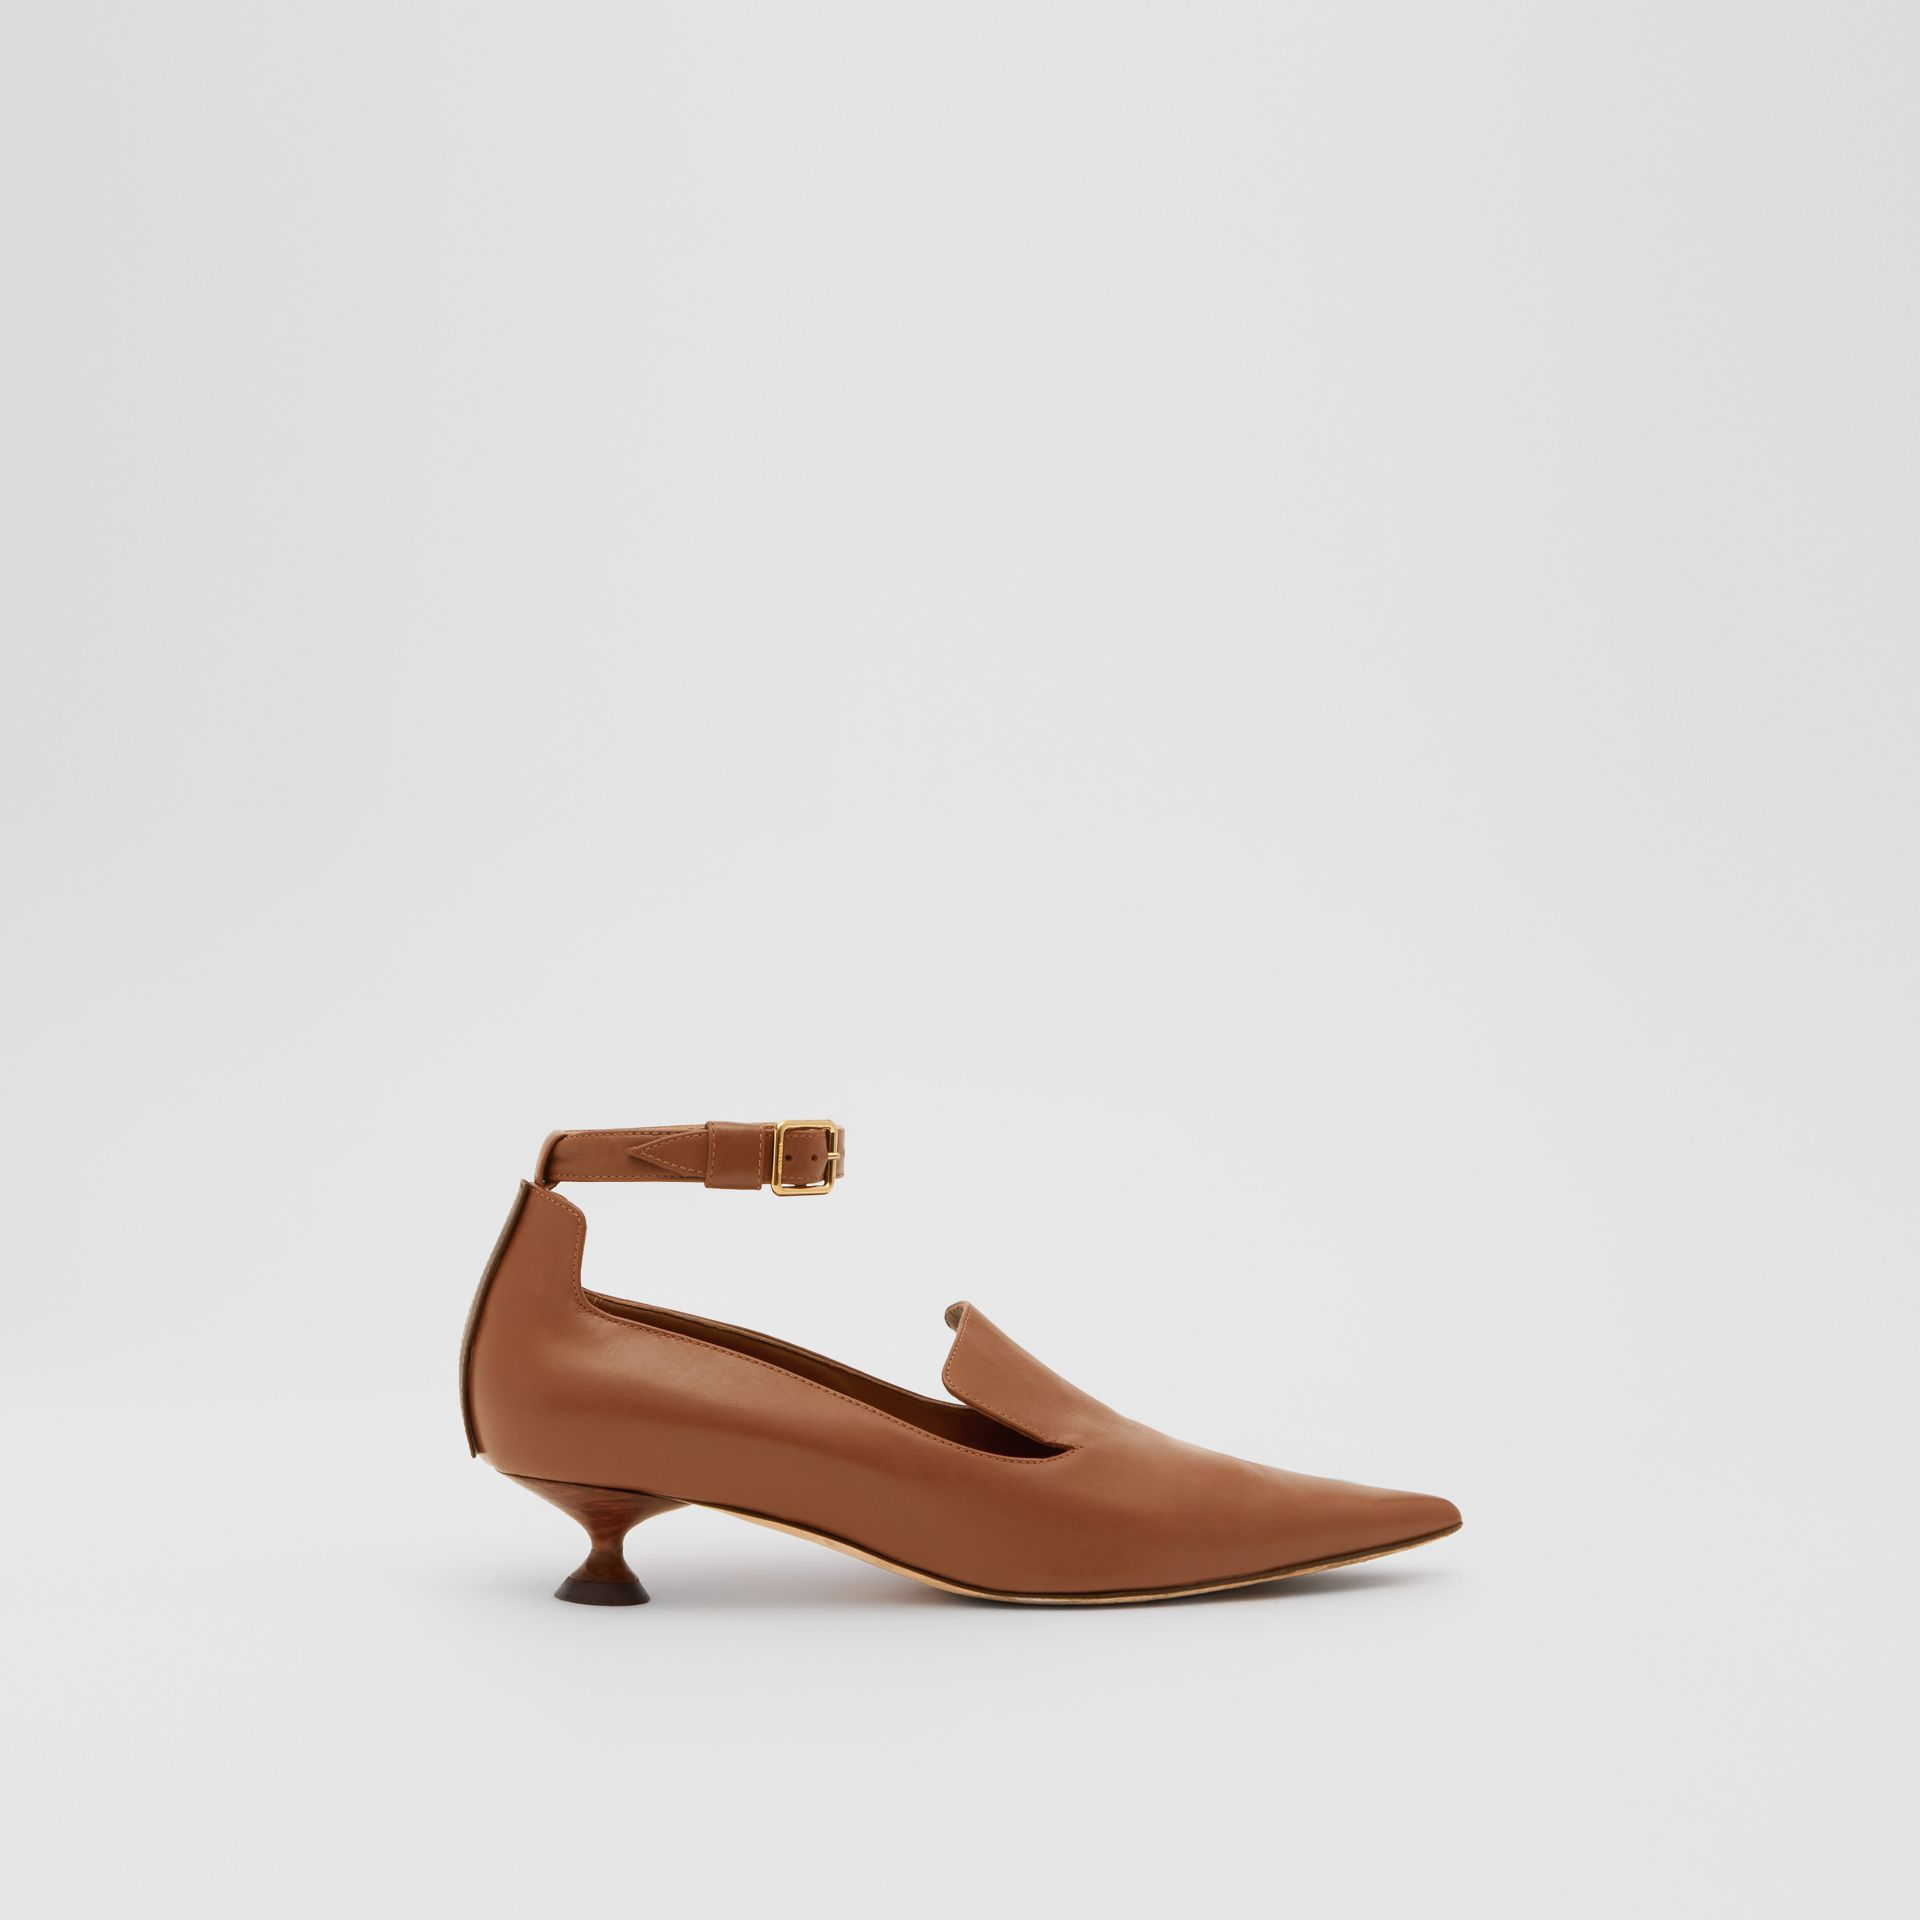 Leather Point-toe Kitten-heel Pumps in Soft Camel - Women | Burberry - gallery image 4